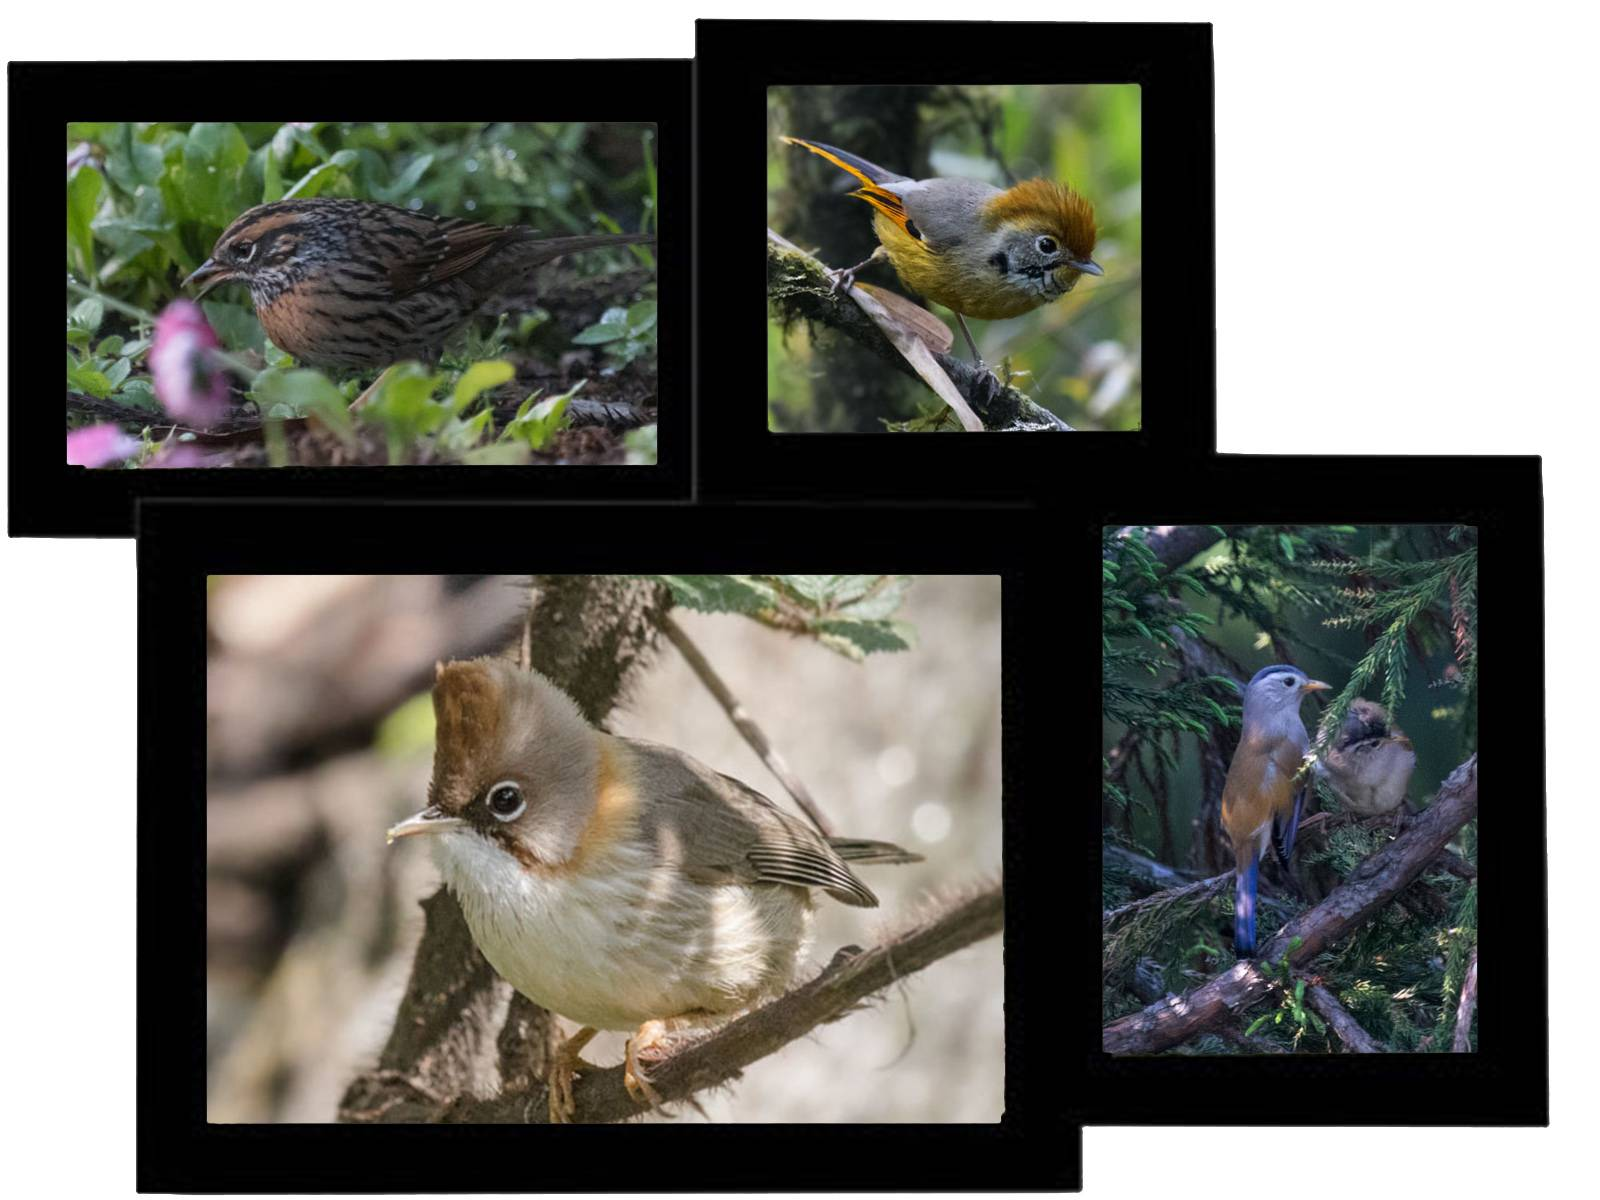 Brown accentor, bar throated siva, yuhina, and blue tailed minla, Neora valley , Birding